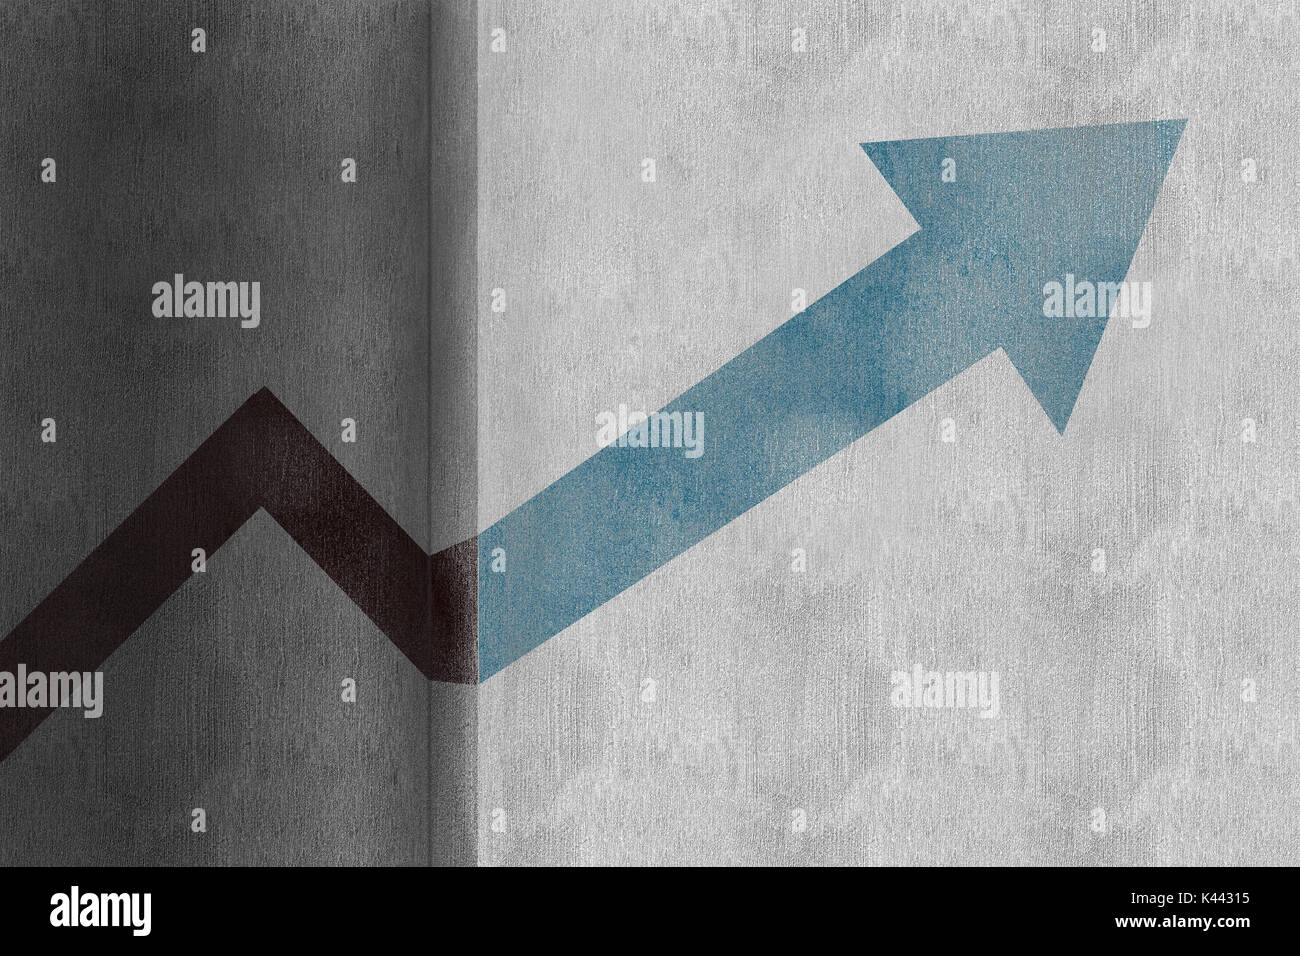 Vector illustration of arrow  against full frame shot of steps and staircases - Stock Image